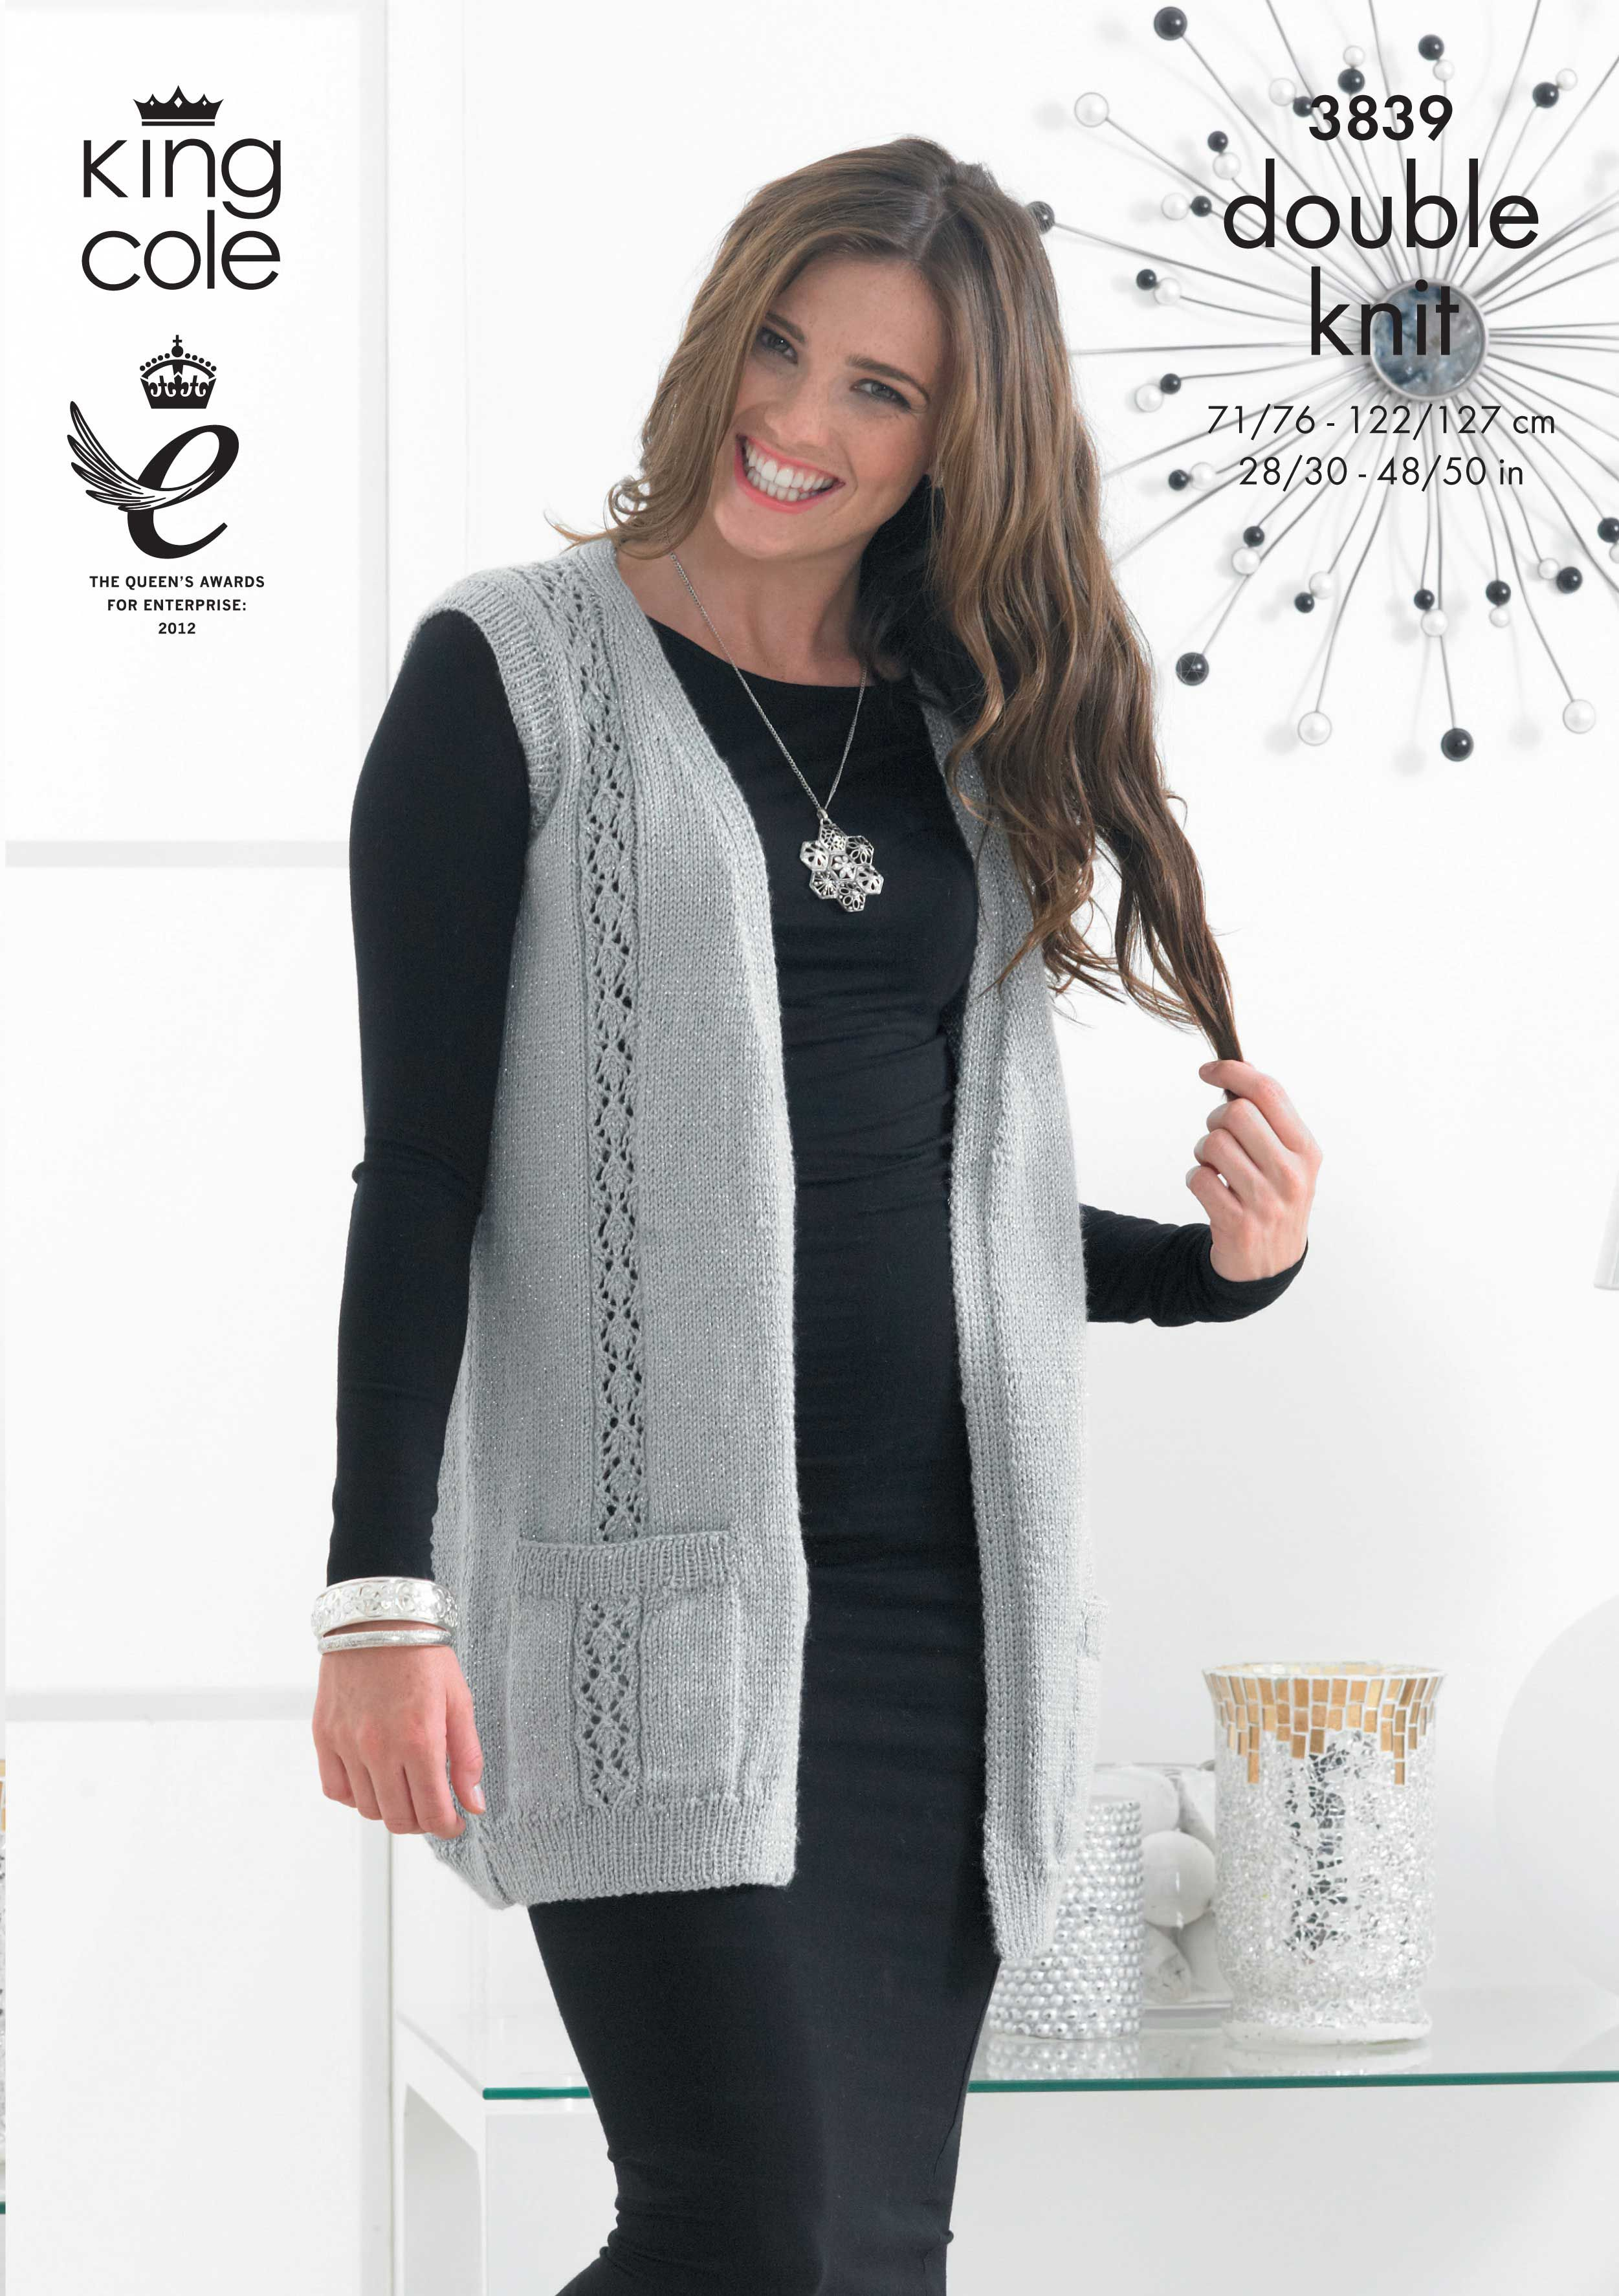 Stylish knitted waistcoat king cole glitz pinterest cardigan and waistcoat in king cole glitz dk discover more patterns by king cole at loveknitting the world largest range of knitting supplies we stock bankloansurffo Gallery